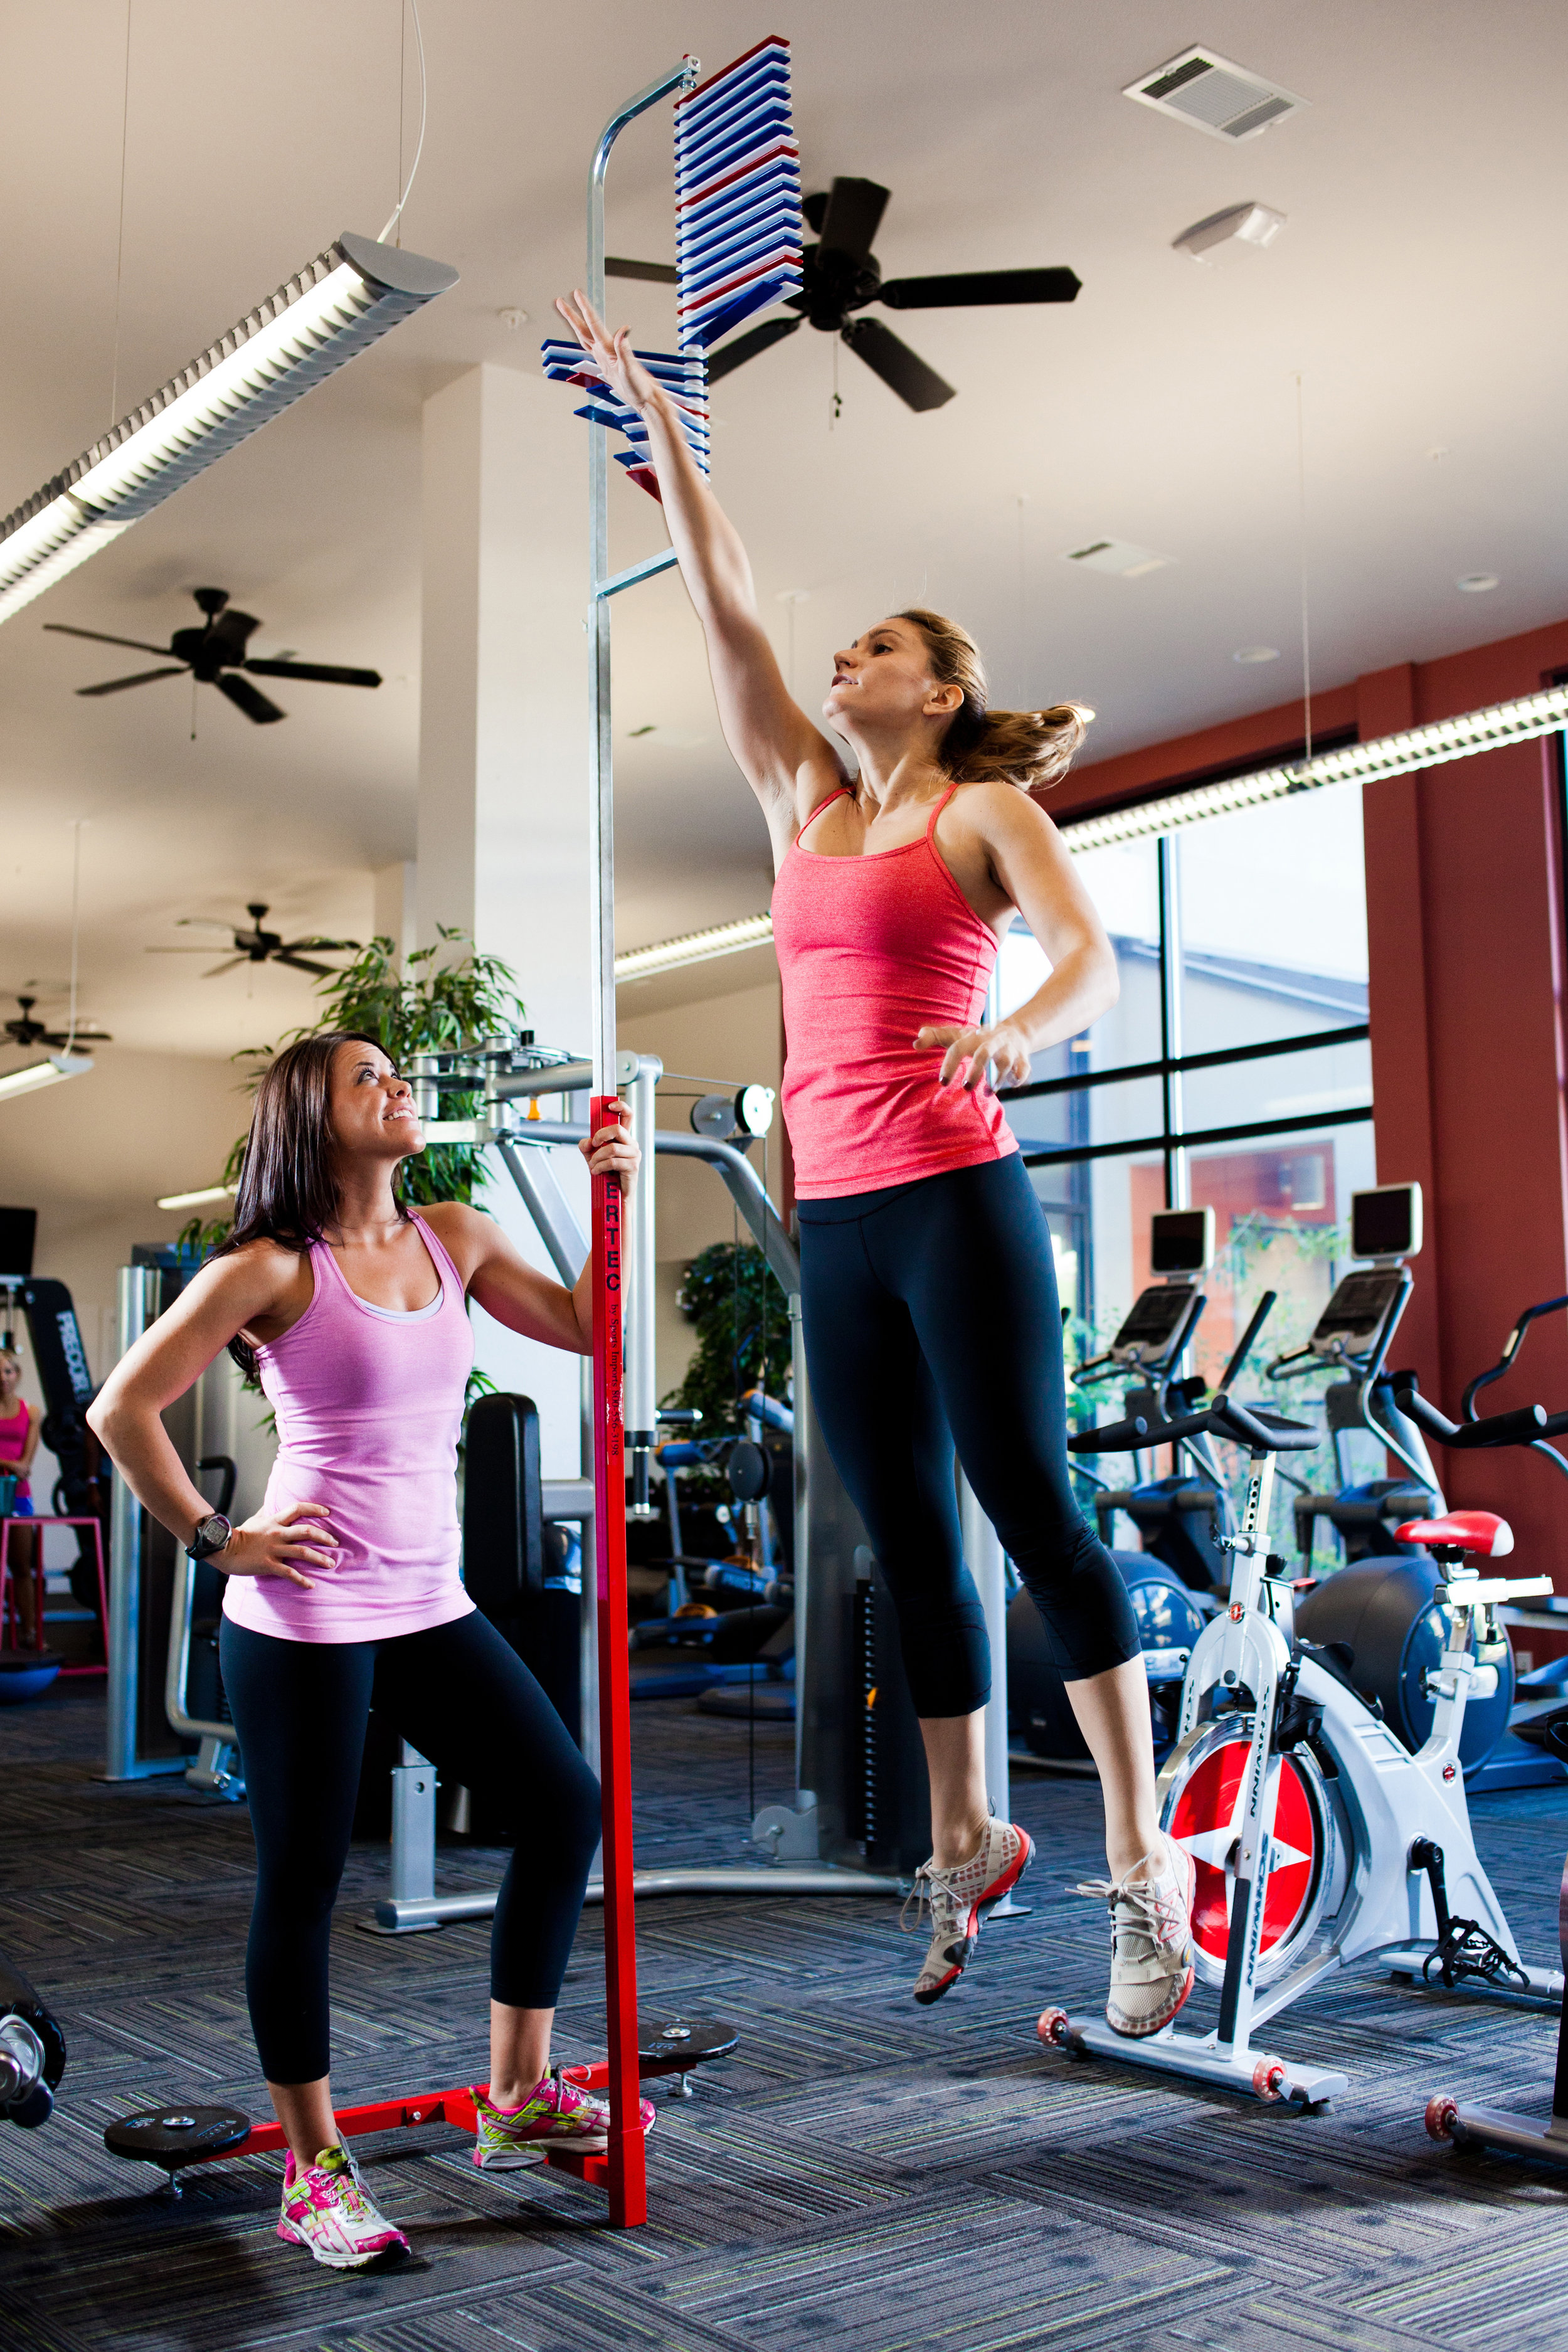 Interested in personal training? Get started with our personal trainers today!